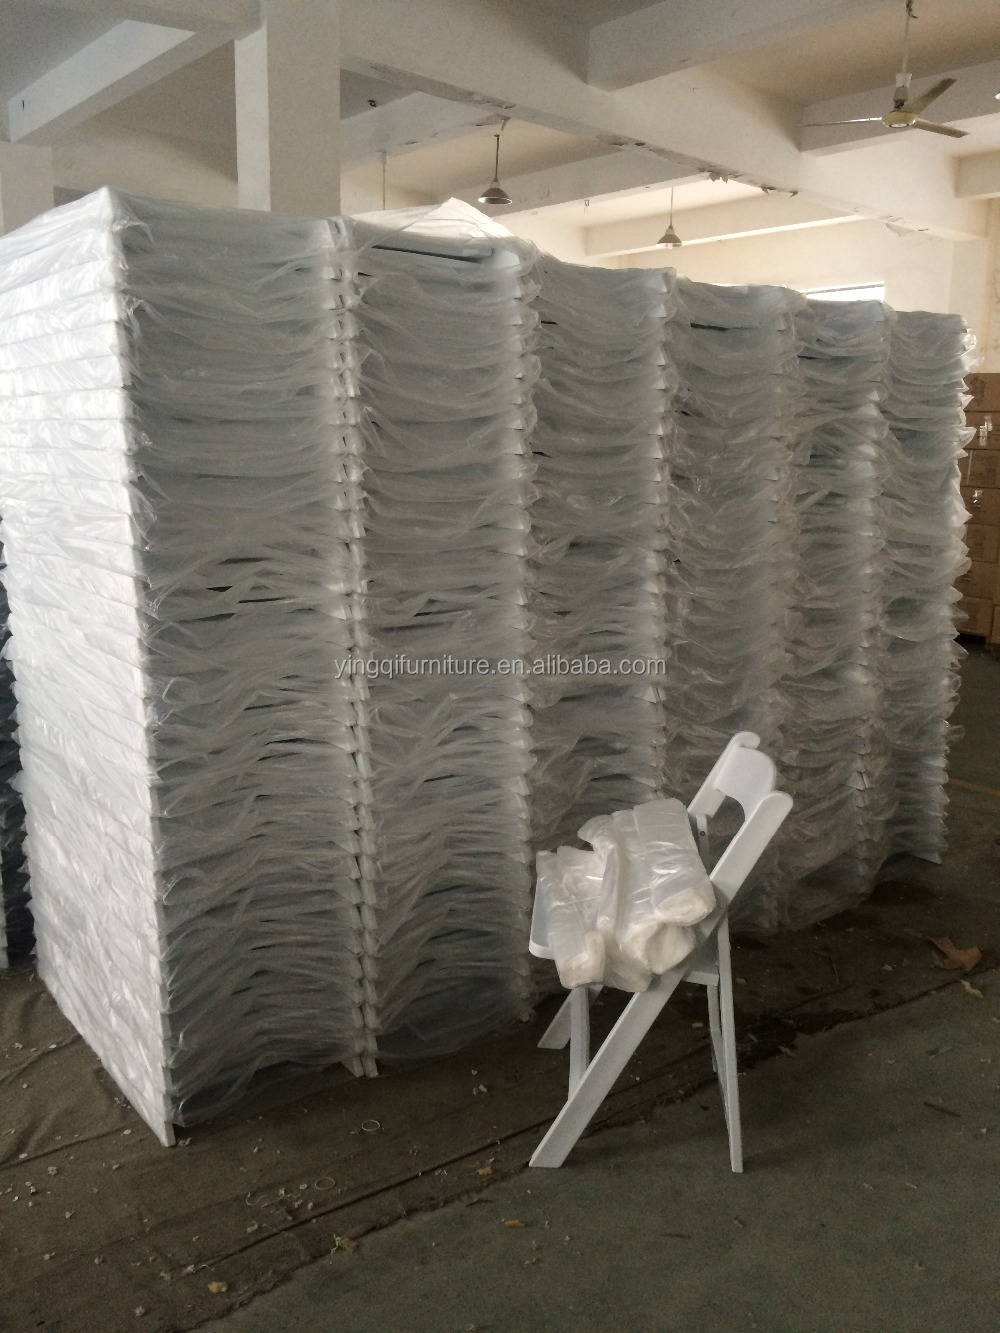 Wholesale White Folding Resin Chair For Wedding Used For Sale Buy White Res